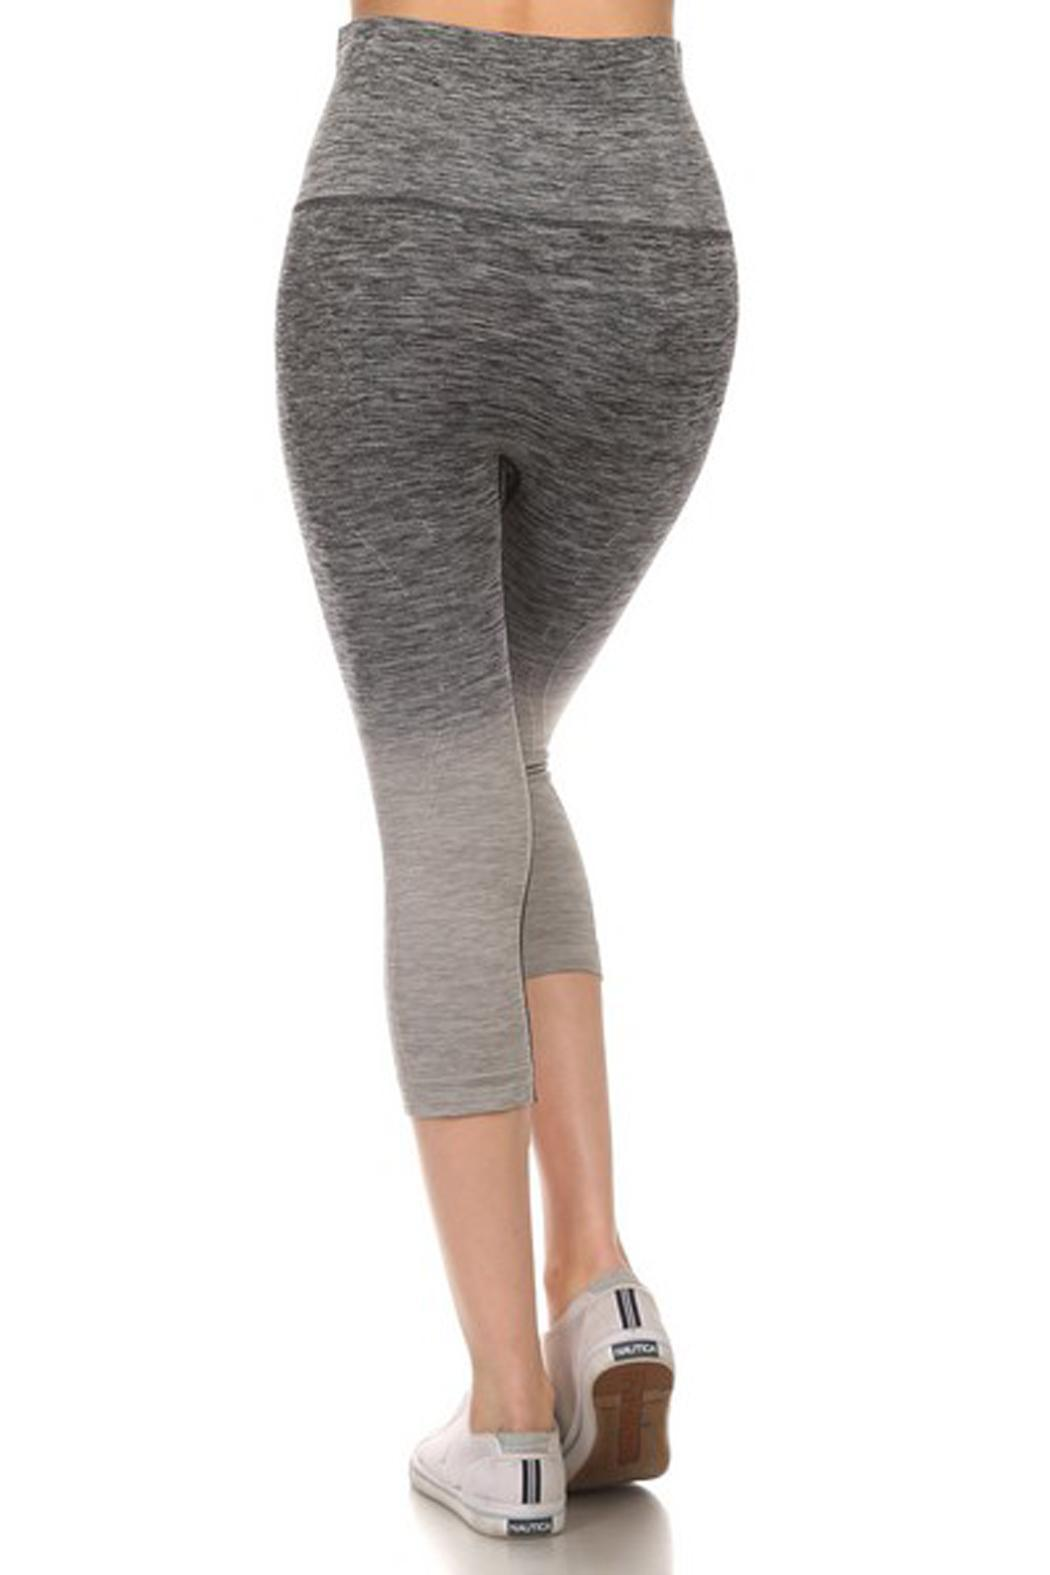 JChronicles Ombre Capri Legging - Side Cropped Image